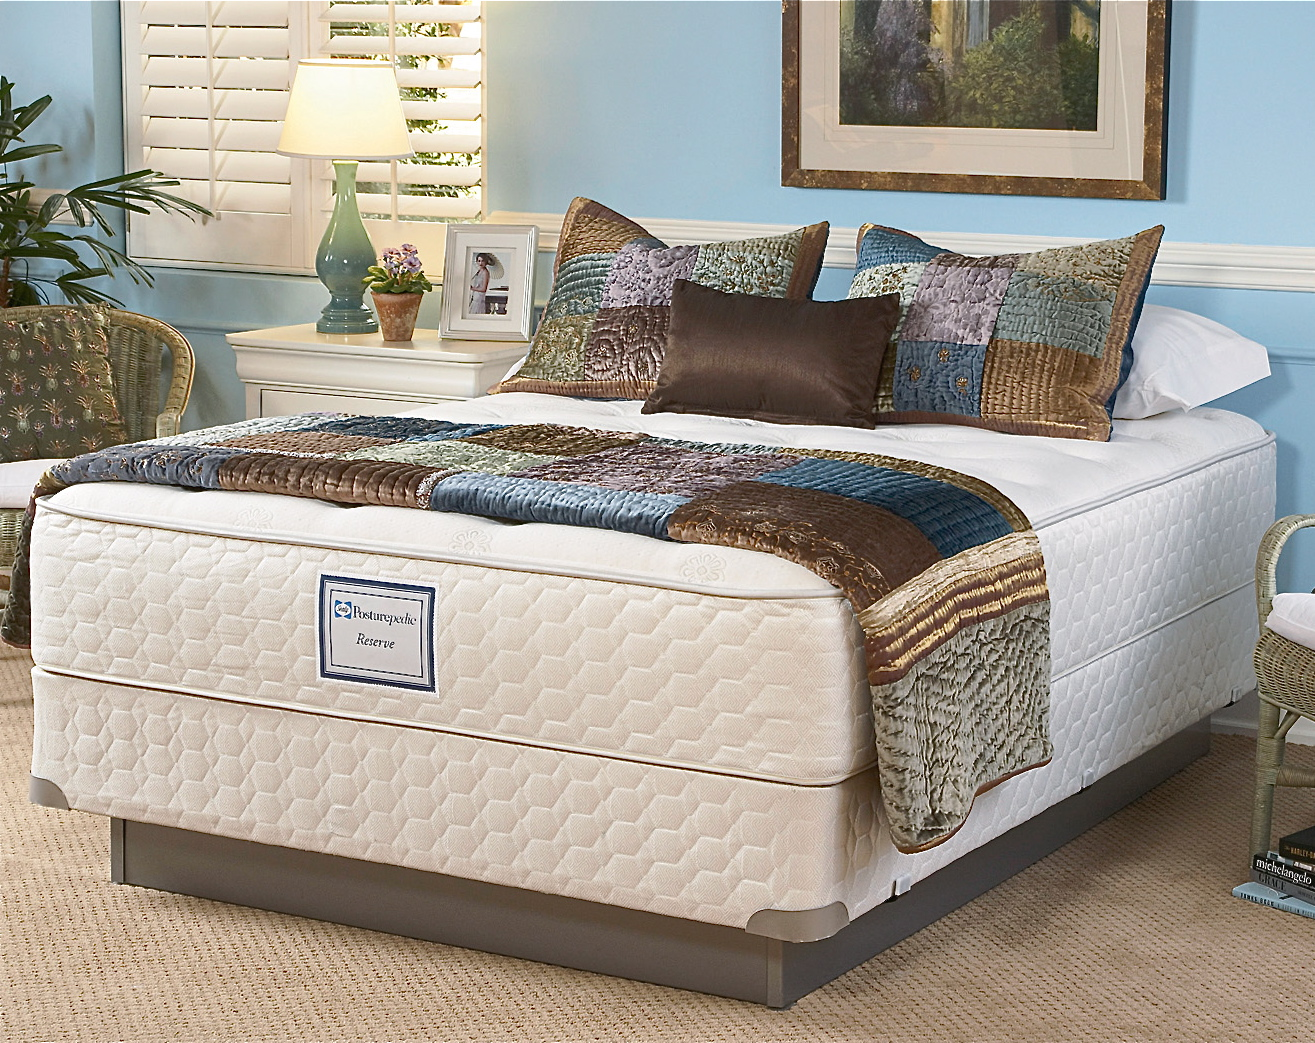 Sealy Posturepedic Reserve Series Ultra Plush Mattress